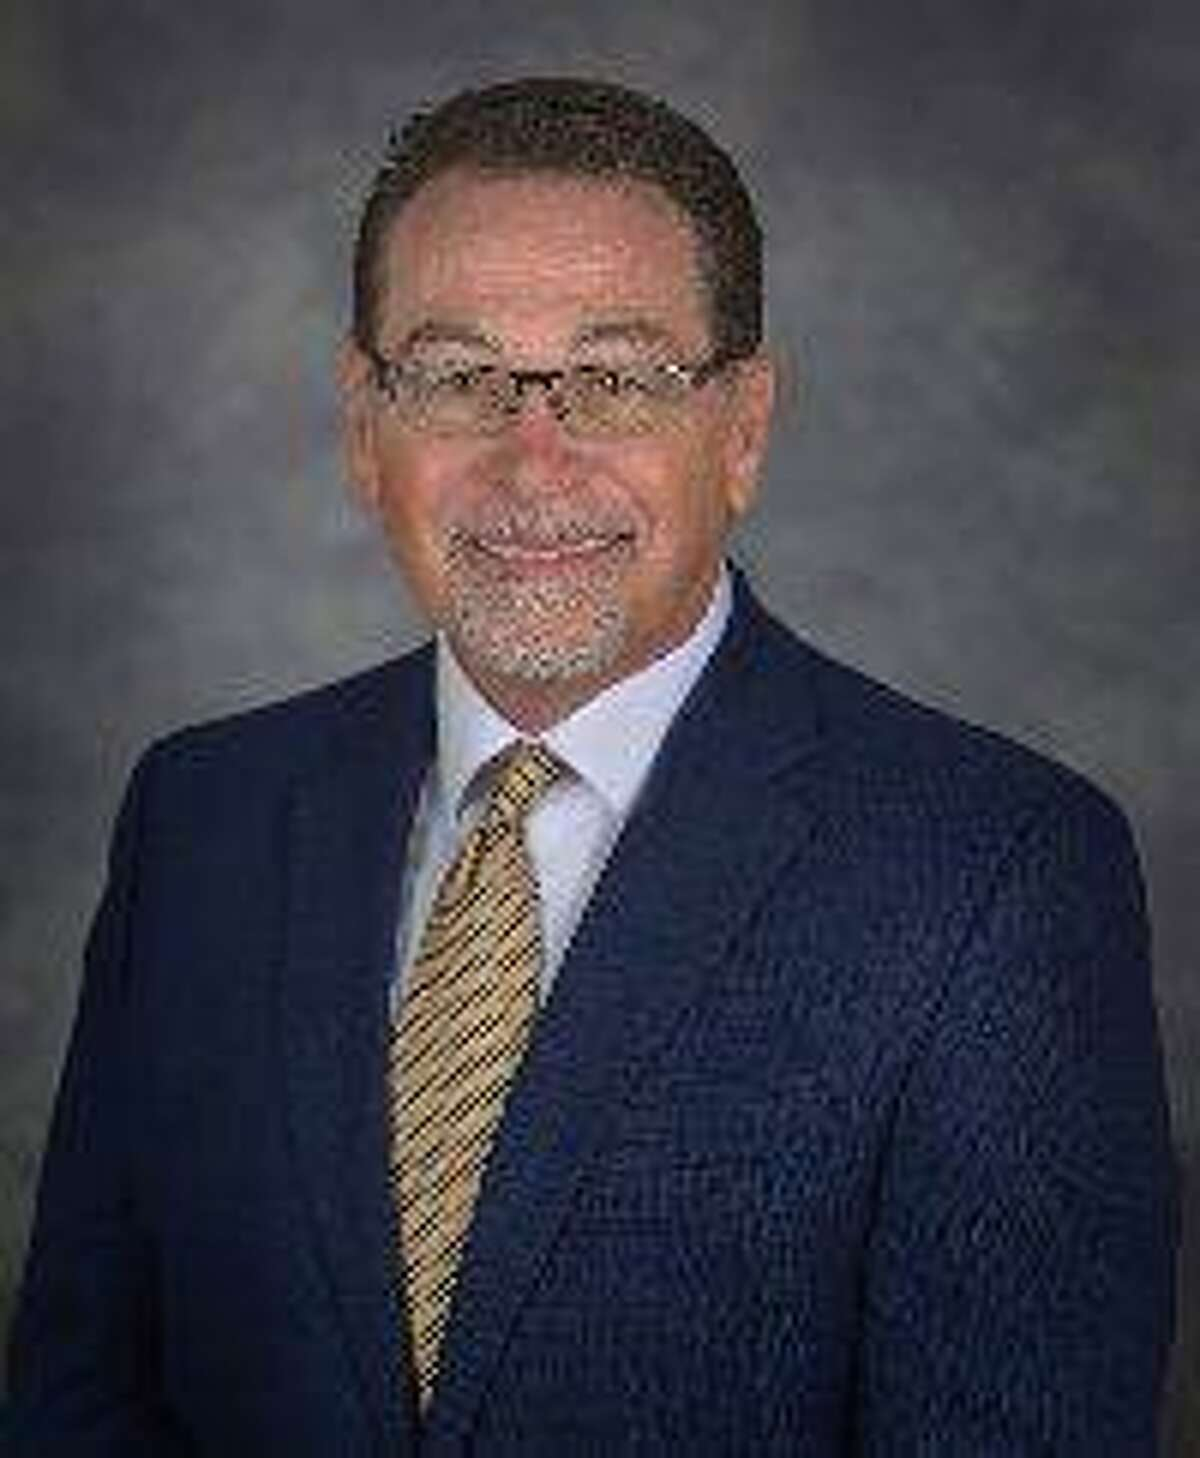 First elected in 2019 in an unopposed race, Gristy replaced former council member Byron Bevers for the Seat No. 2 on the five-member council. Prior to being elected to the council, Gristy was a well-known figure in the small city from his eight years on the city's Planning and Zoning Commission as well as his continued efforts volunteering with a local youth swimming team.